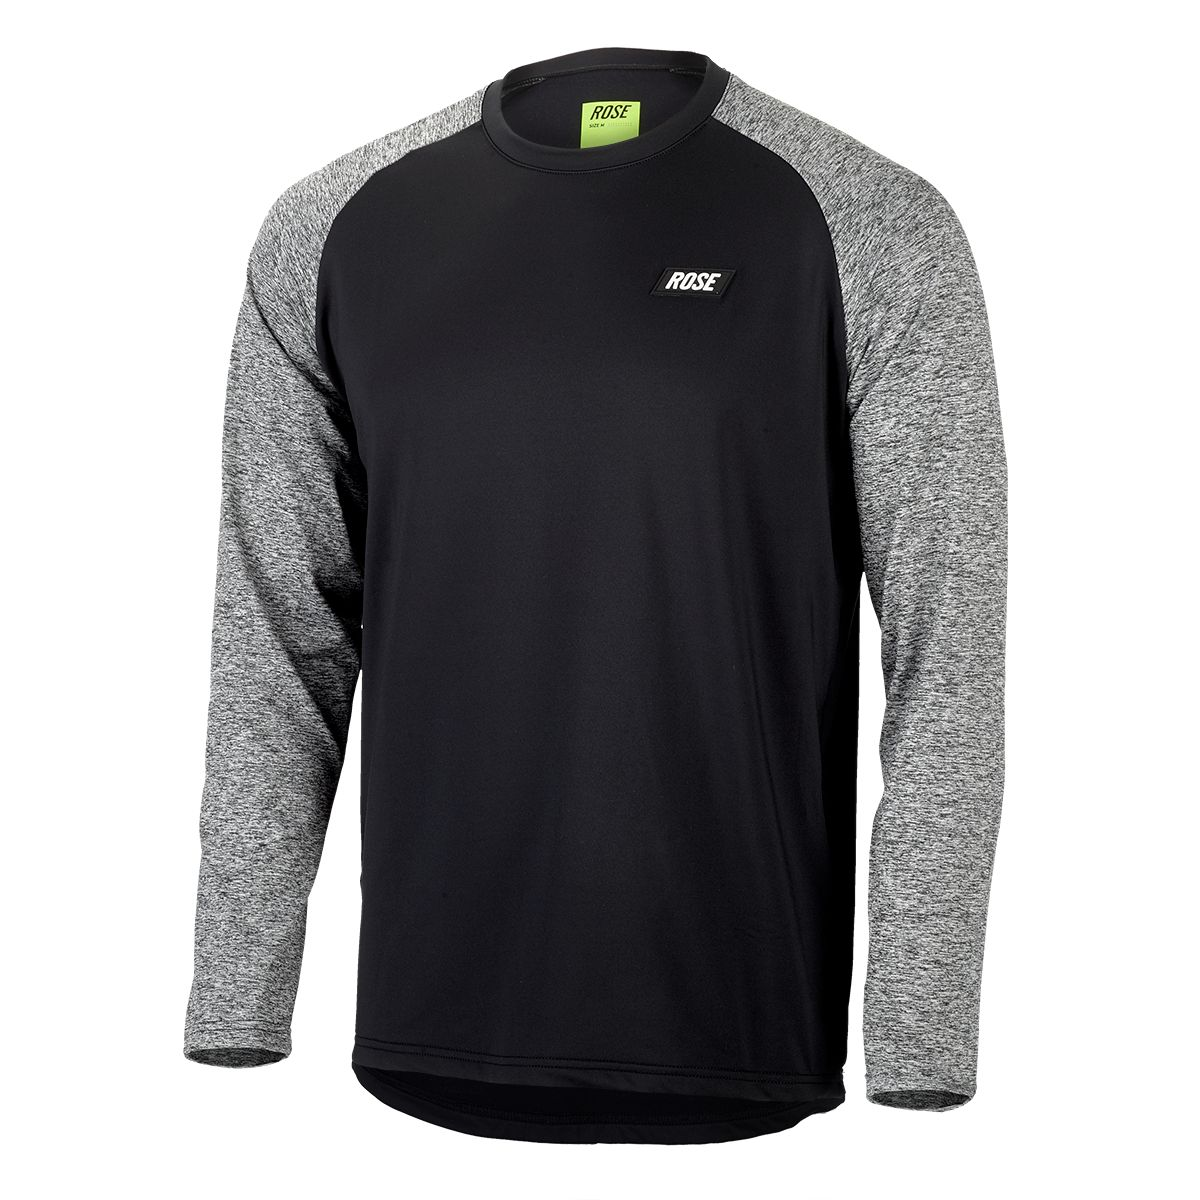 HEATHER thermal long sleeve shirt